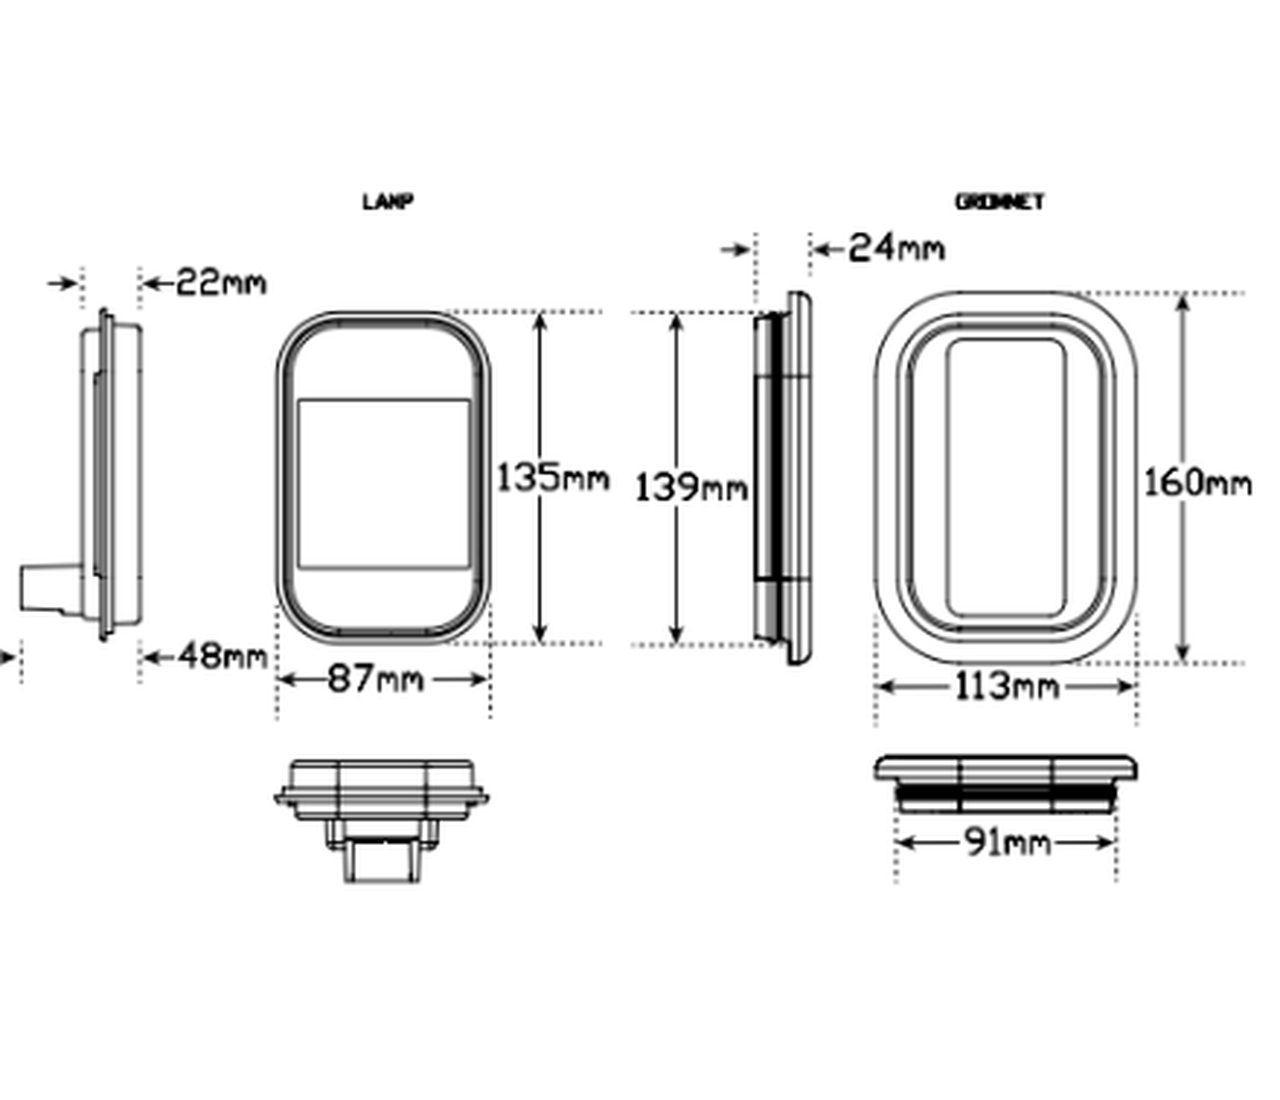 Line Drawing - 133RMG - Stop Tail Light with Reflector, Rectangle. Multi-volt Single Pack. AL. Ultimate LED.